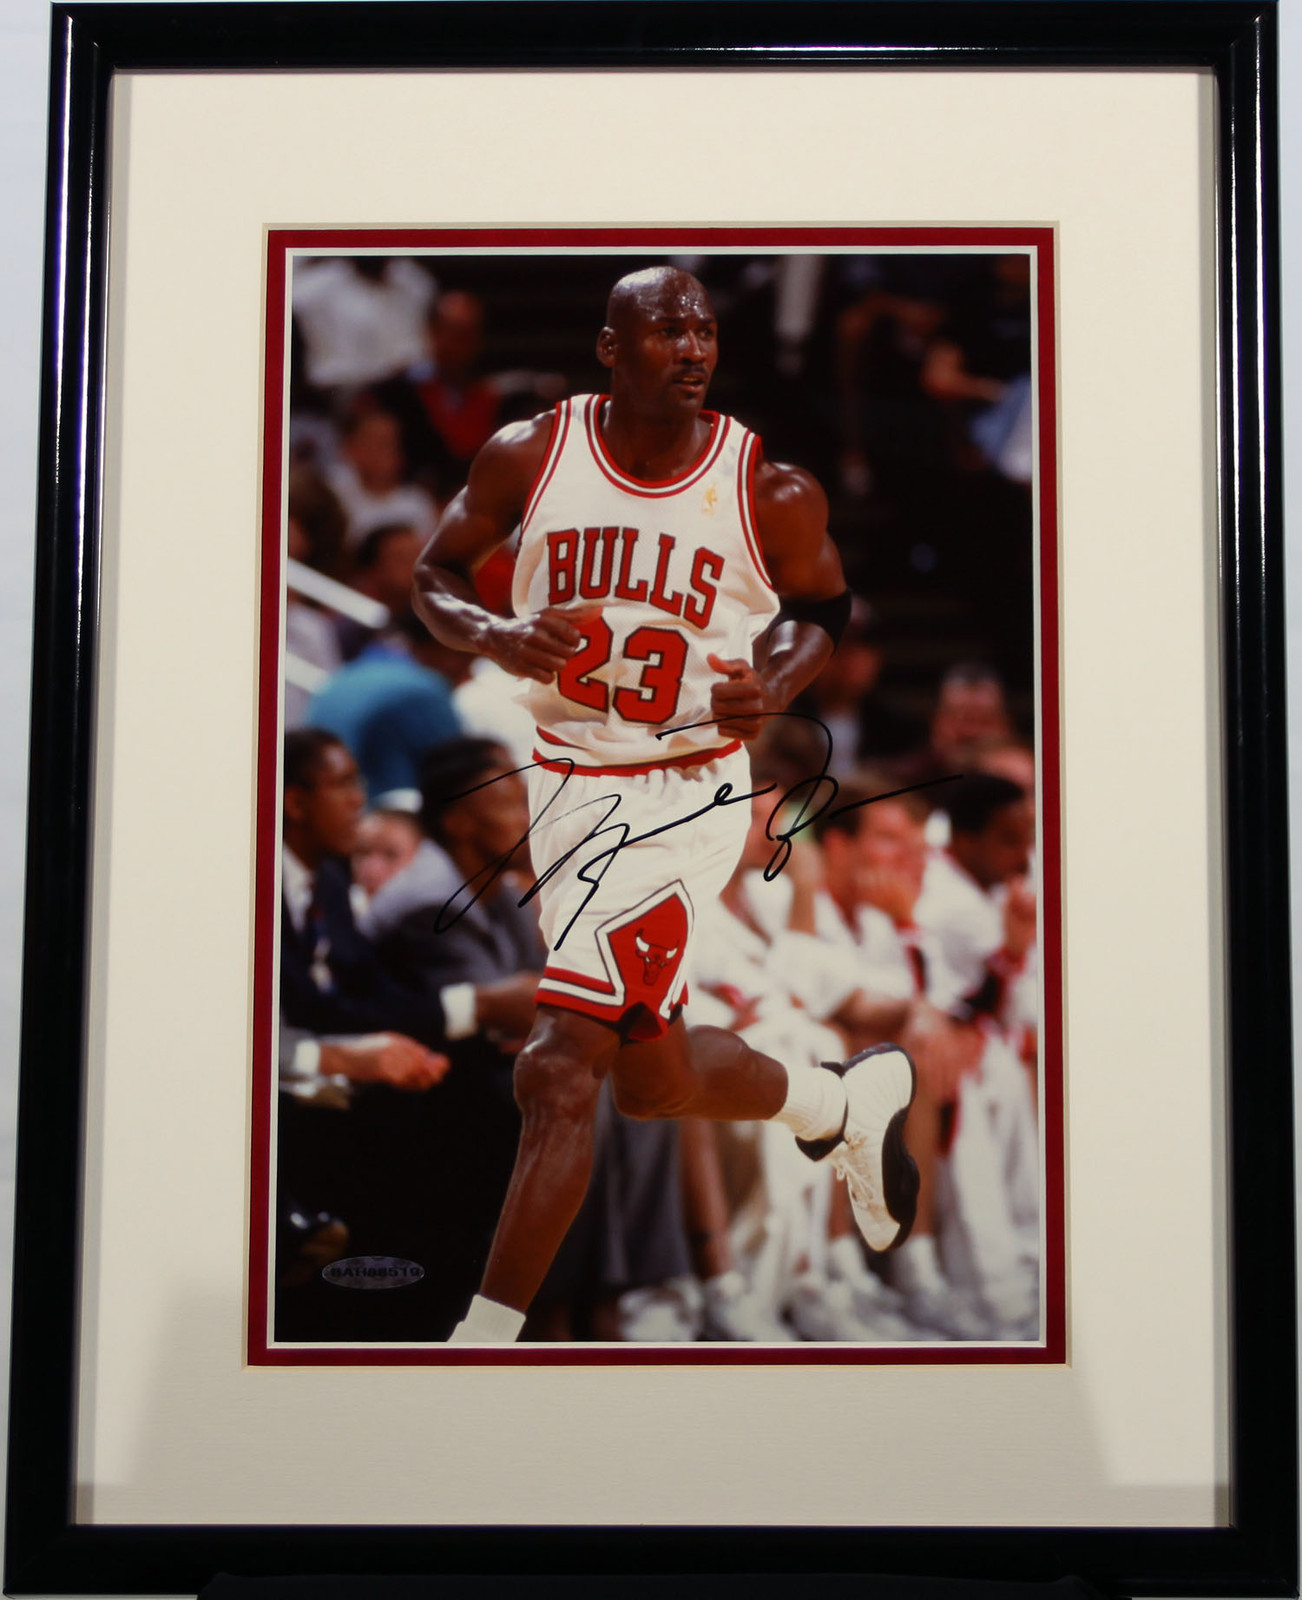 7988b577e0f741 Signed 8x10 Photo Pricing  Active Listings for Michael Jordan Signed  Photographs · Michael Jordan Card and Memorabilia ...